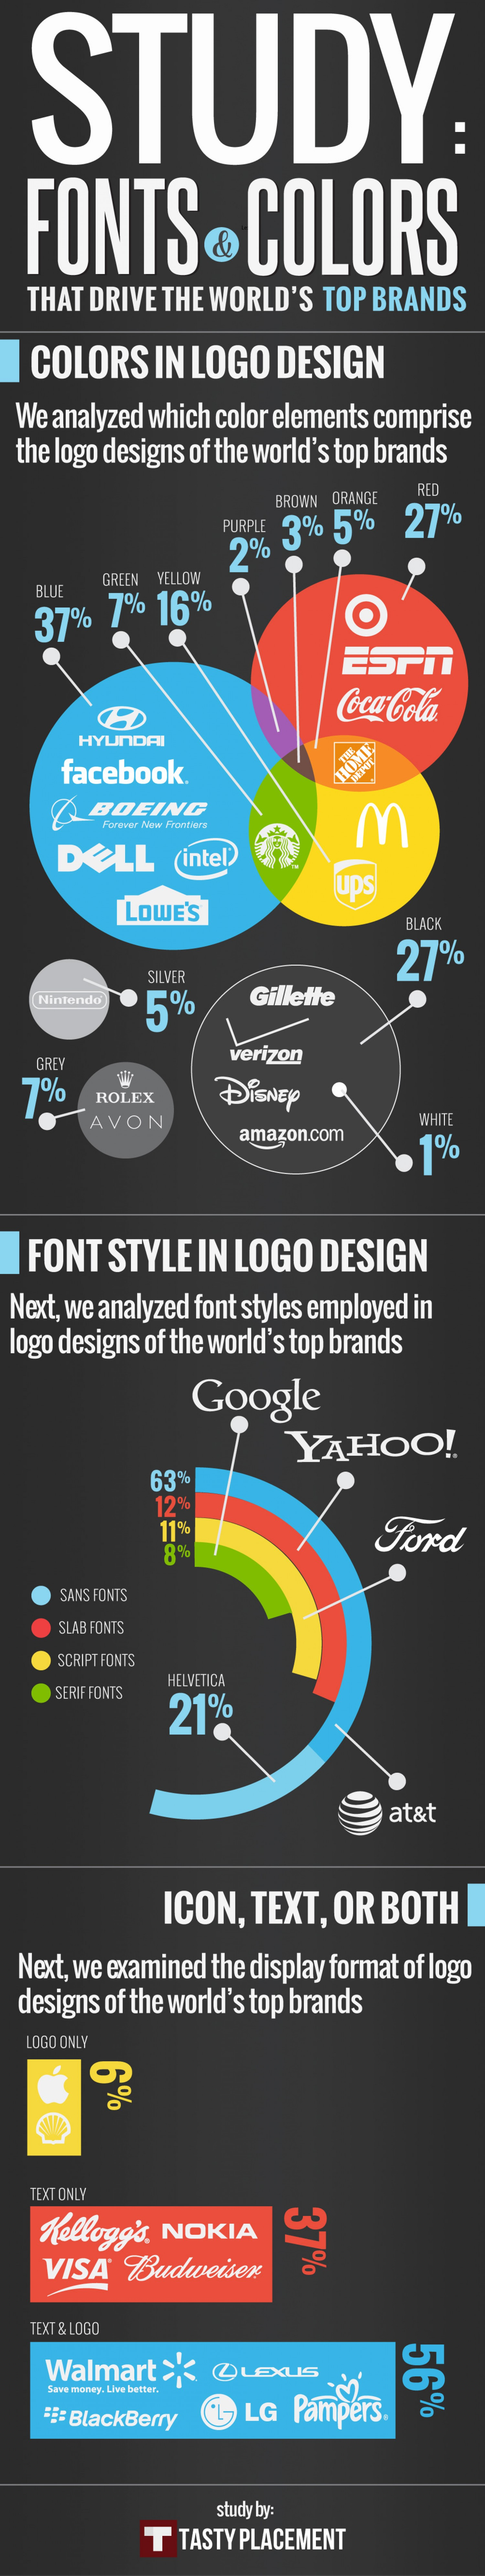 Fonts and Colours Infographic